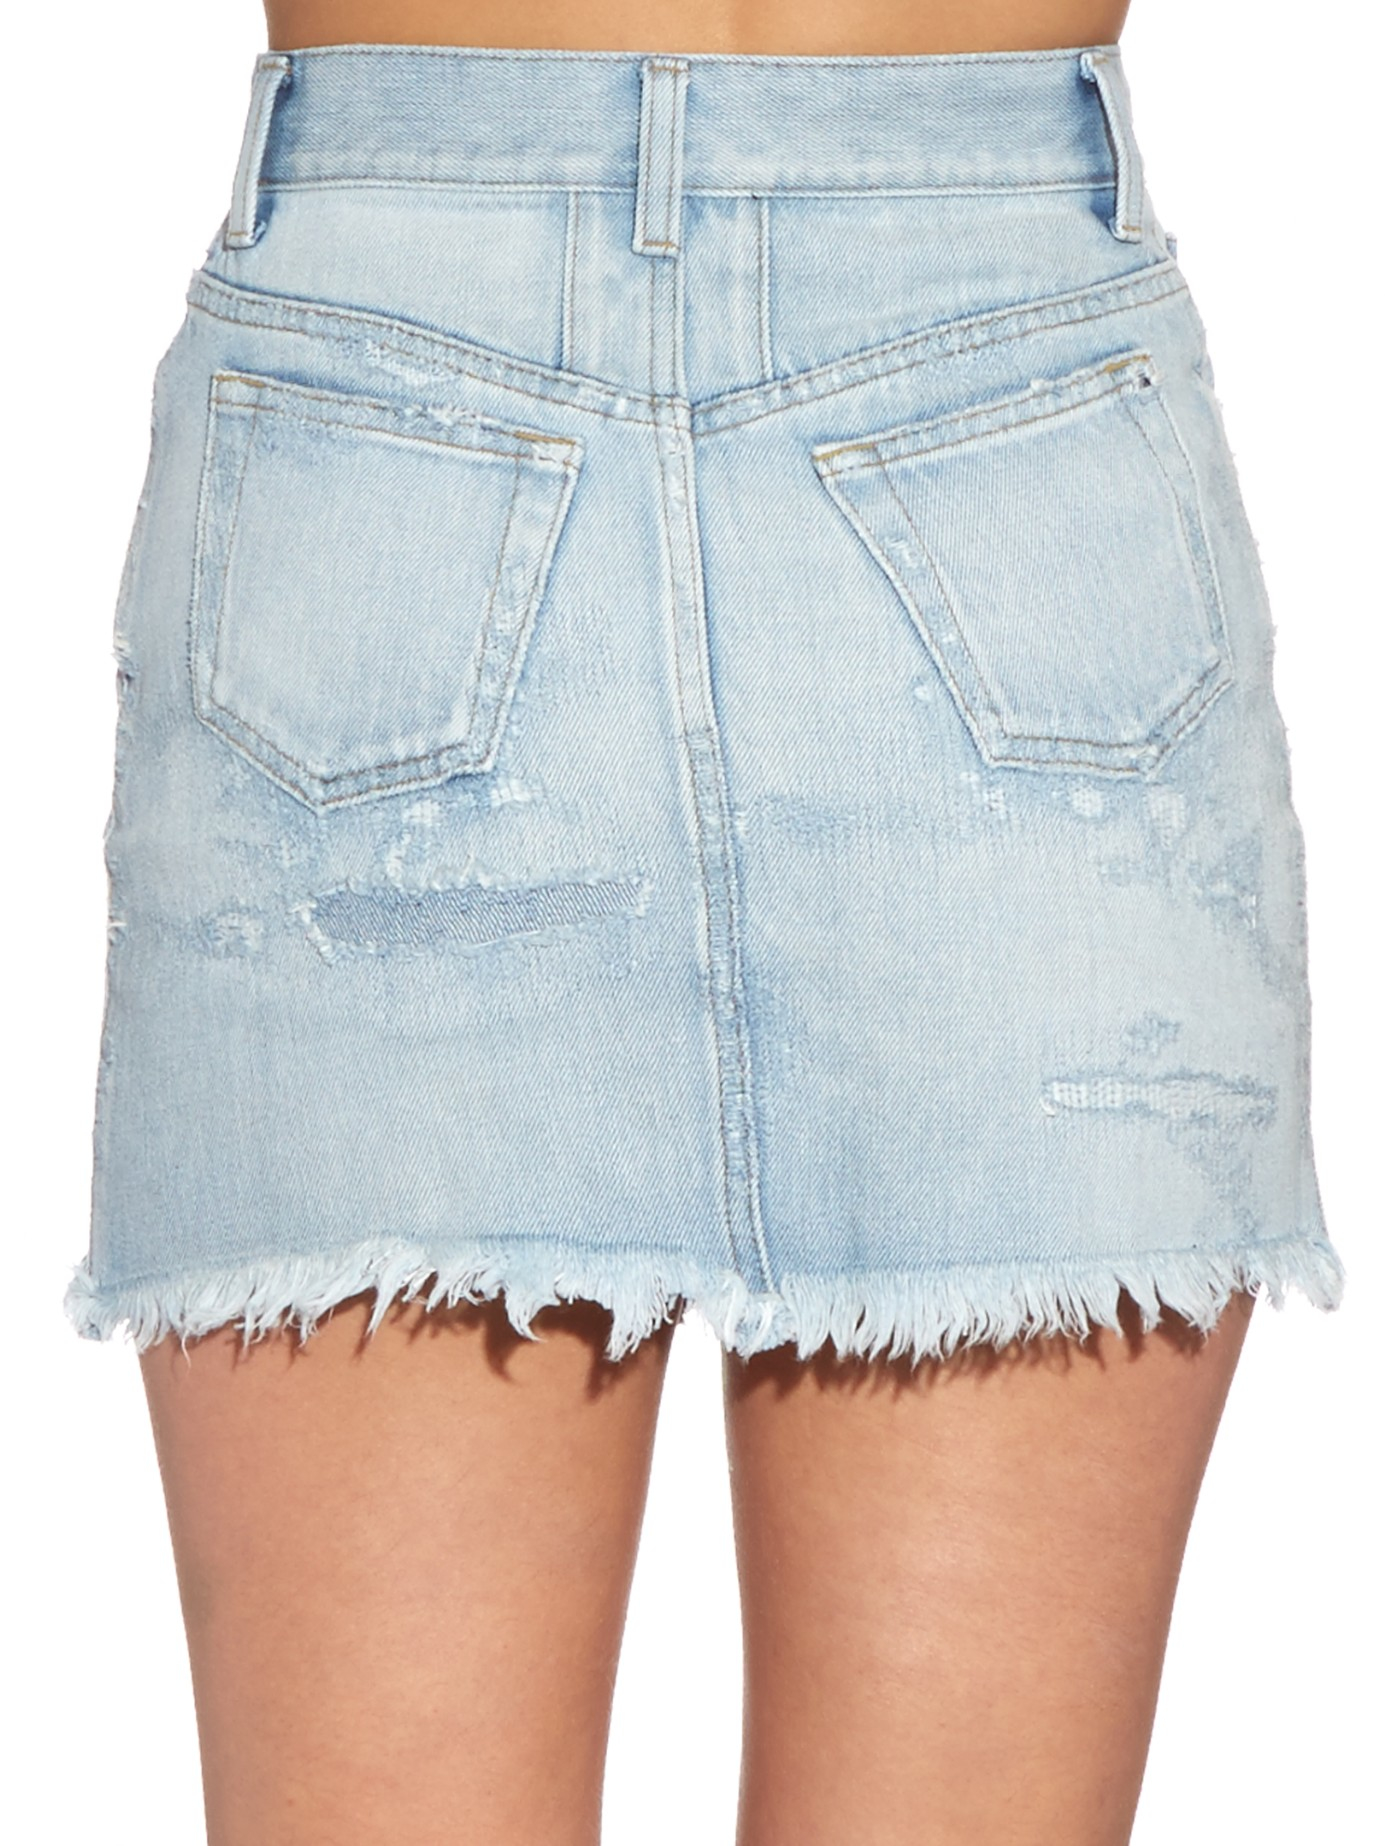 Saint laurent Distressed Denim Mini Skirt in Blue | Lyst